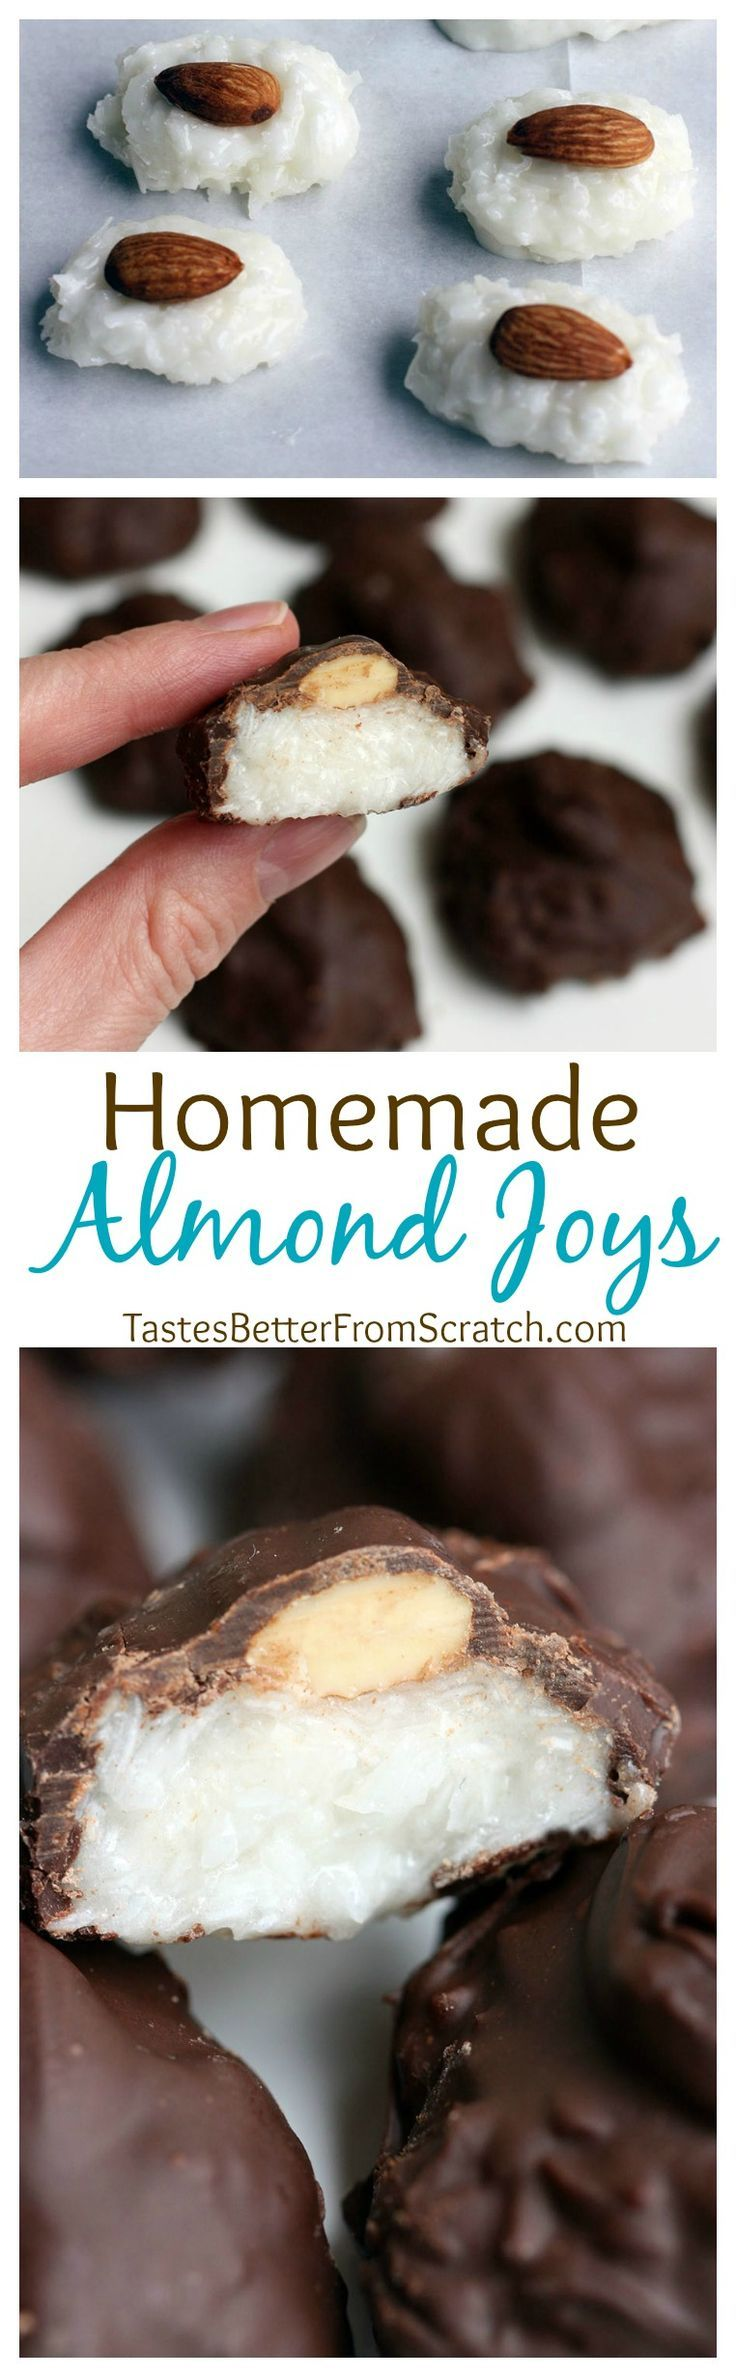 Homemade Almond Joys with just 5 ingredients! My husband LOVES these! Recipe on MyRecipeMagic.com